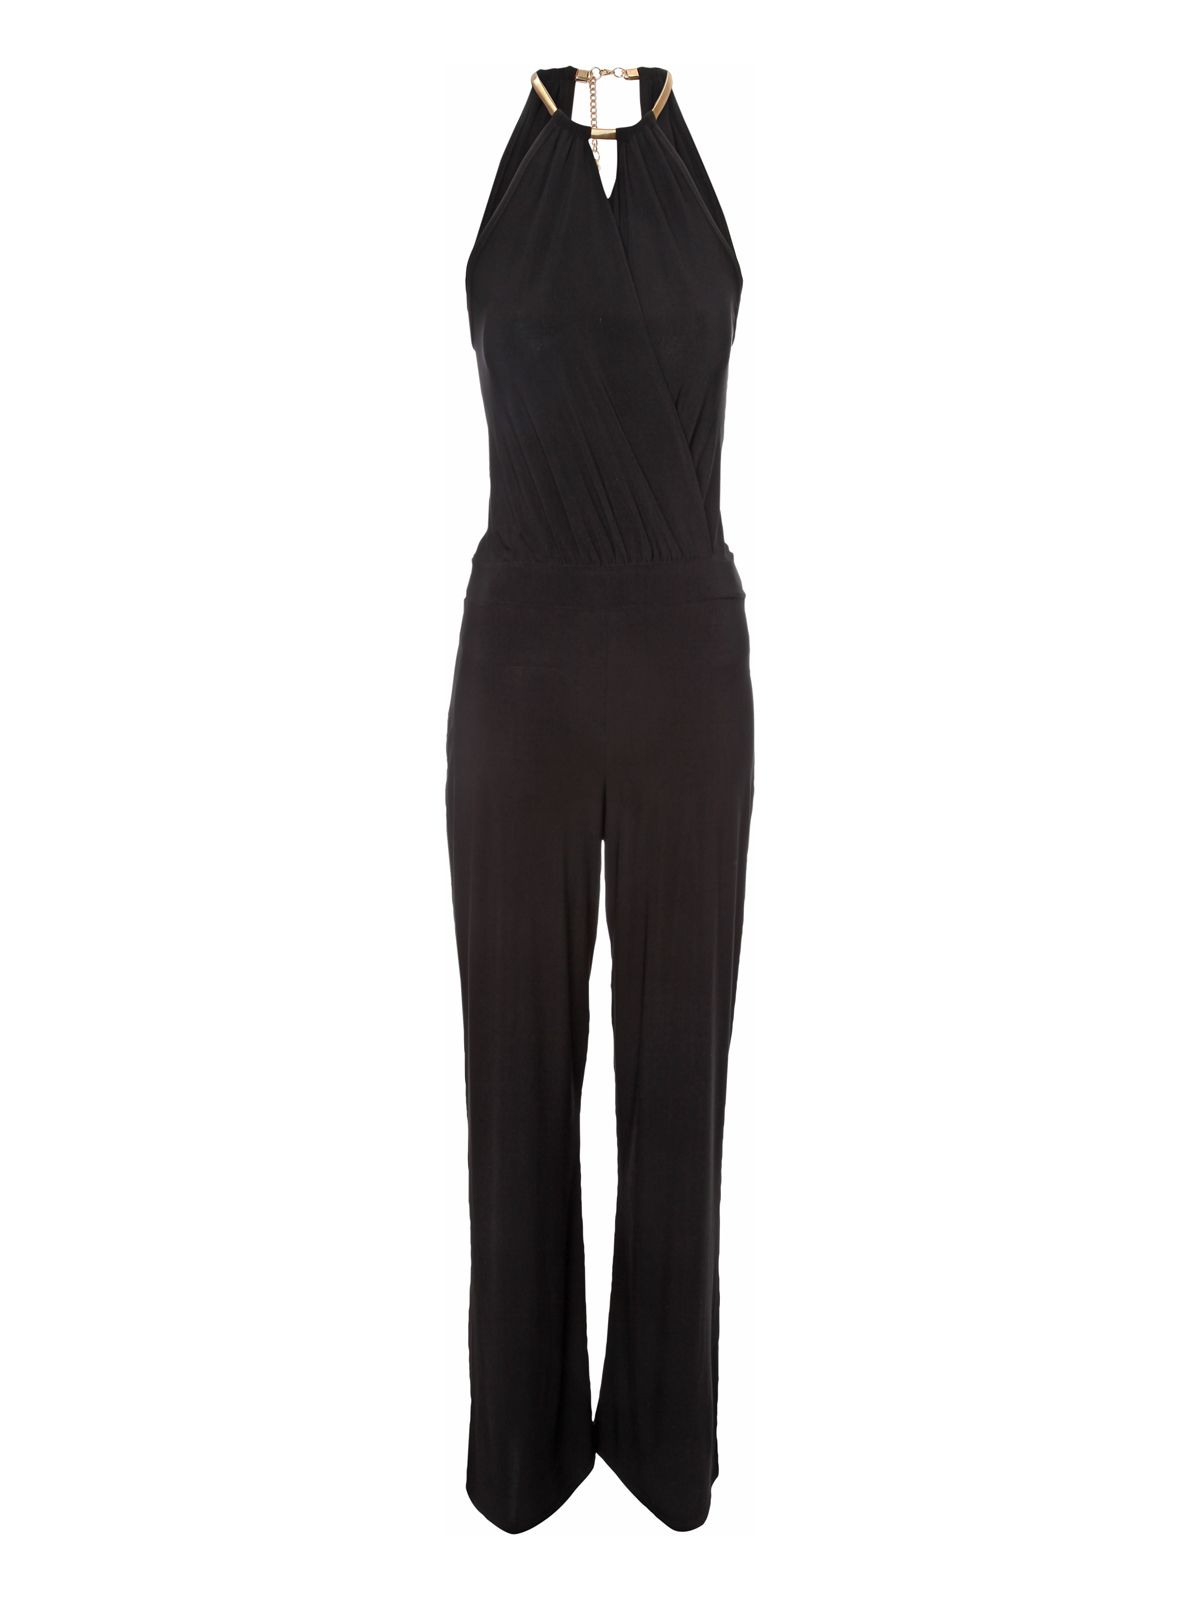 Black halter neck trim jumpsuit